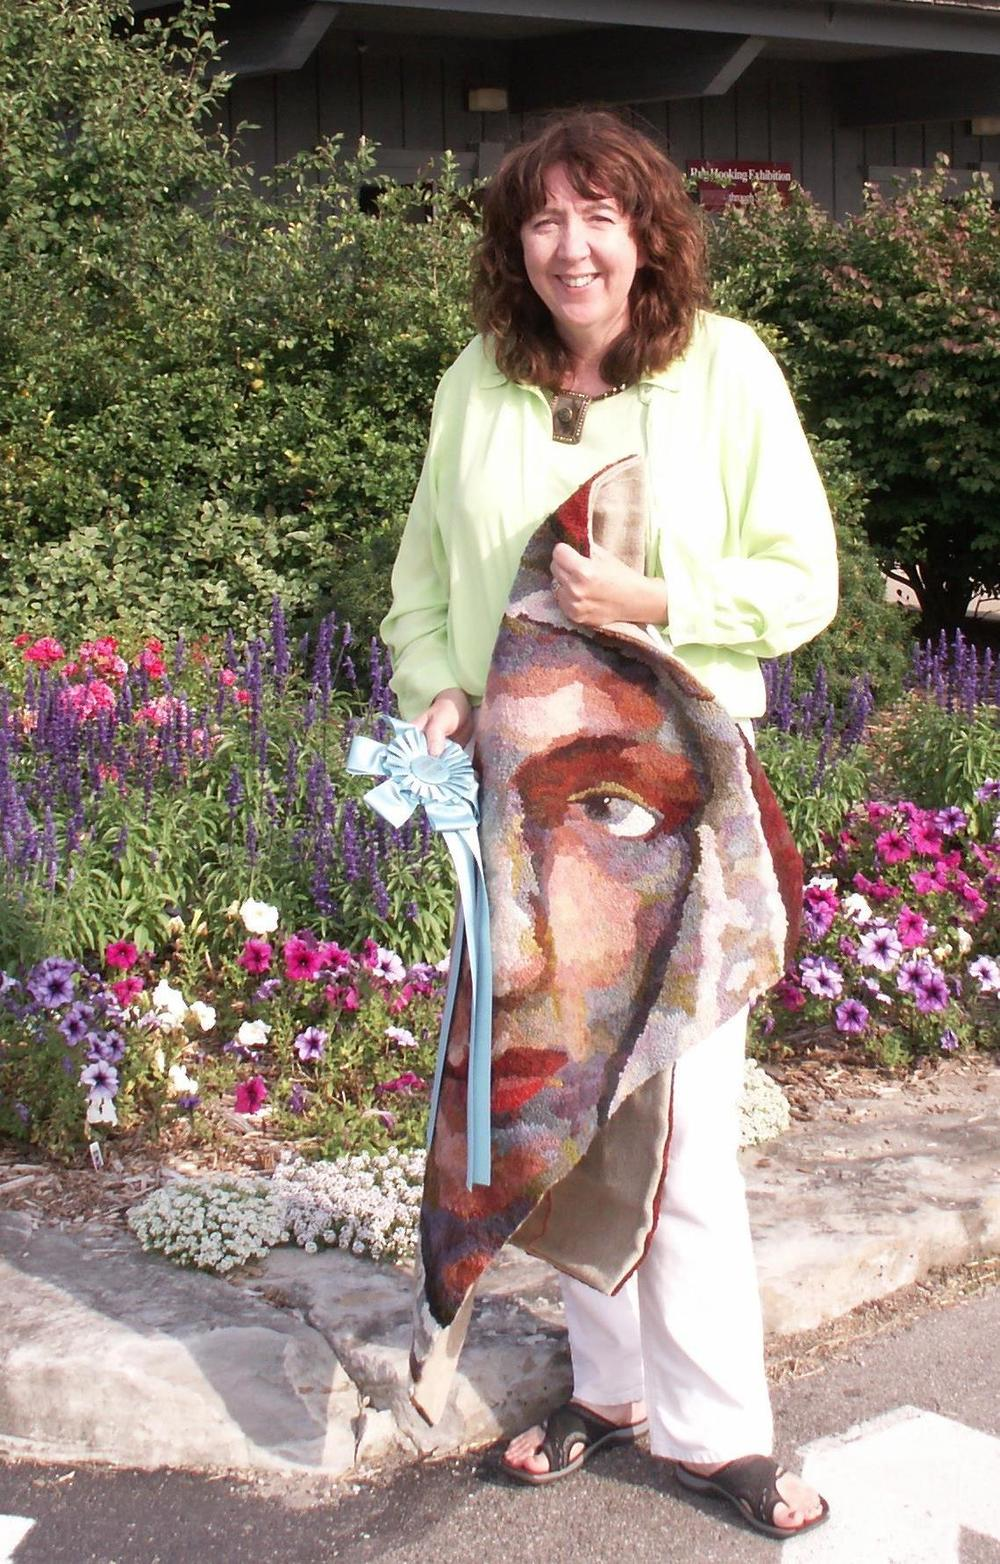 Me in front of Sauder Village 2013 with Mary Magdalene rug and People's Choice Ribbon.